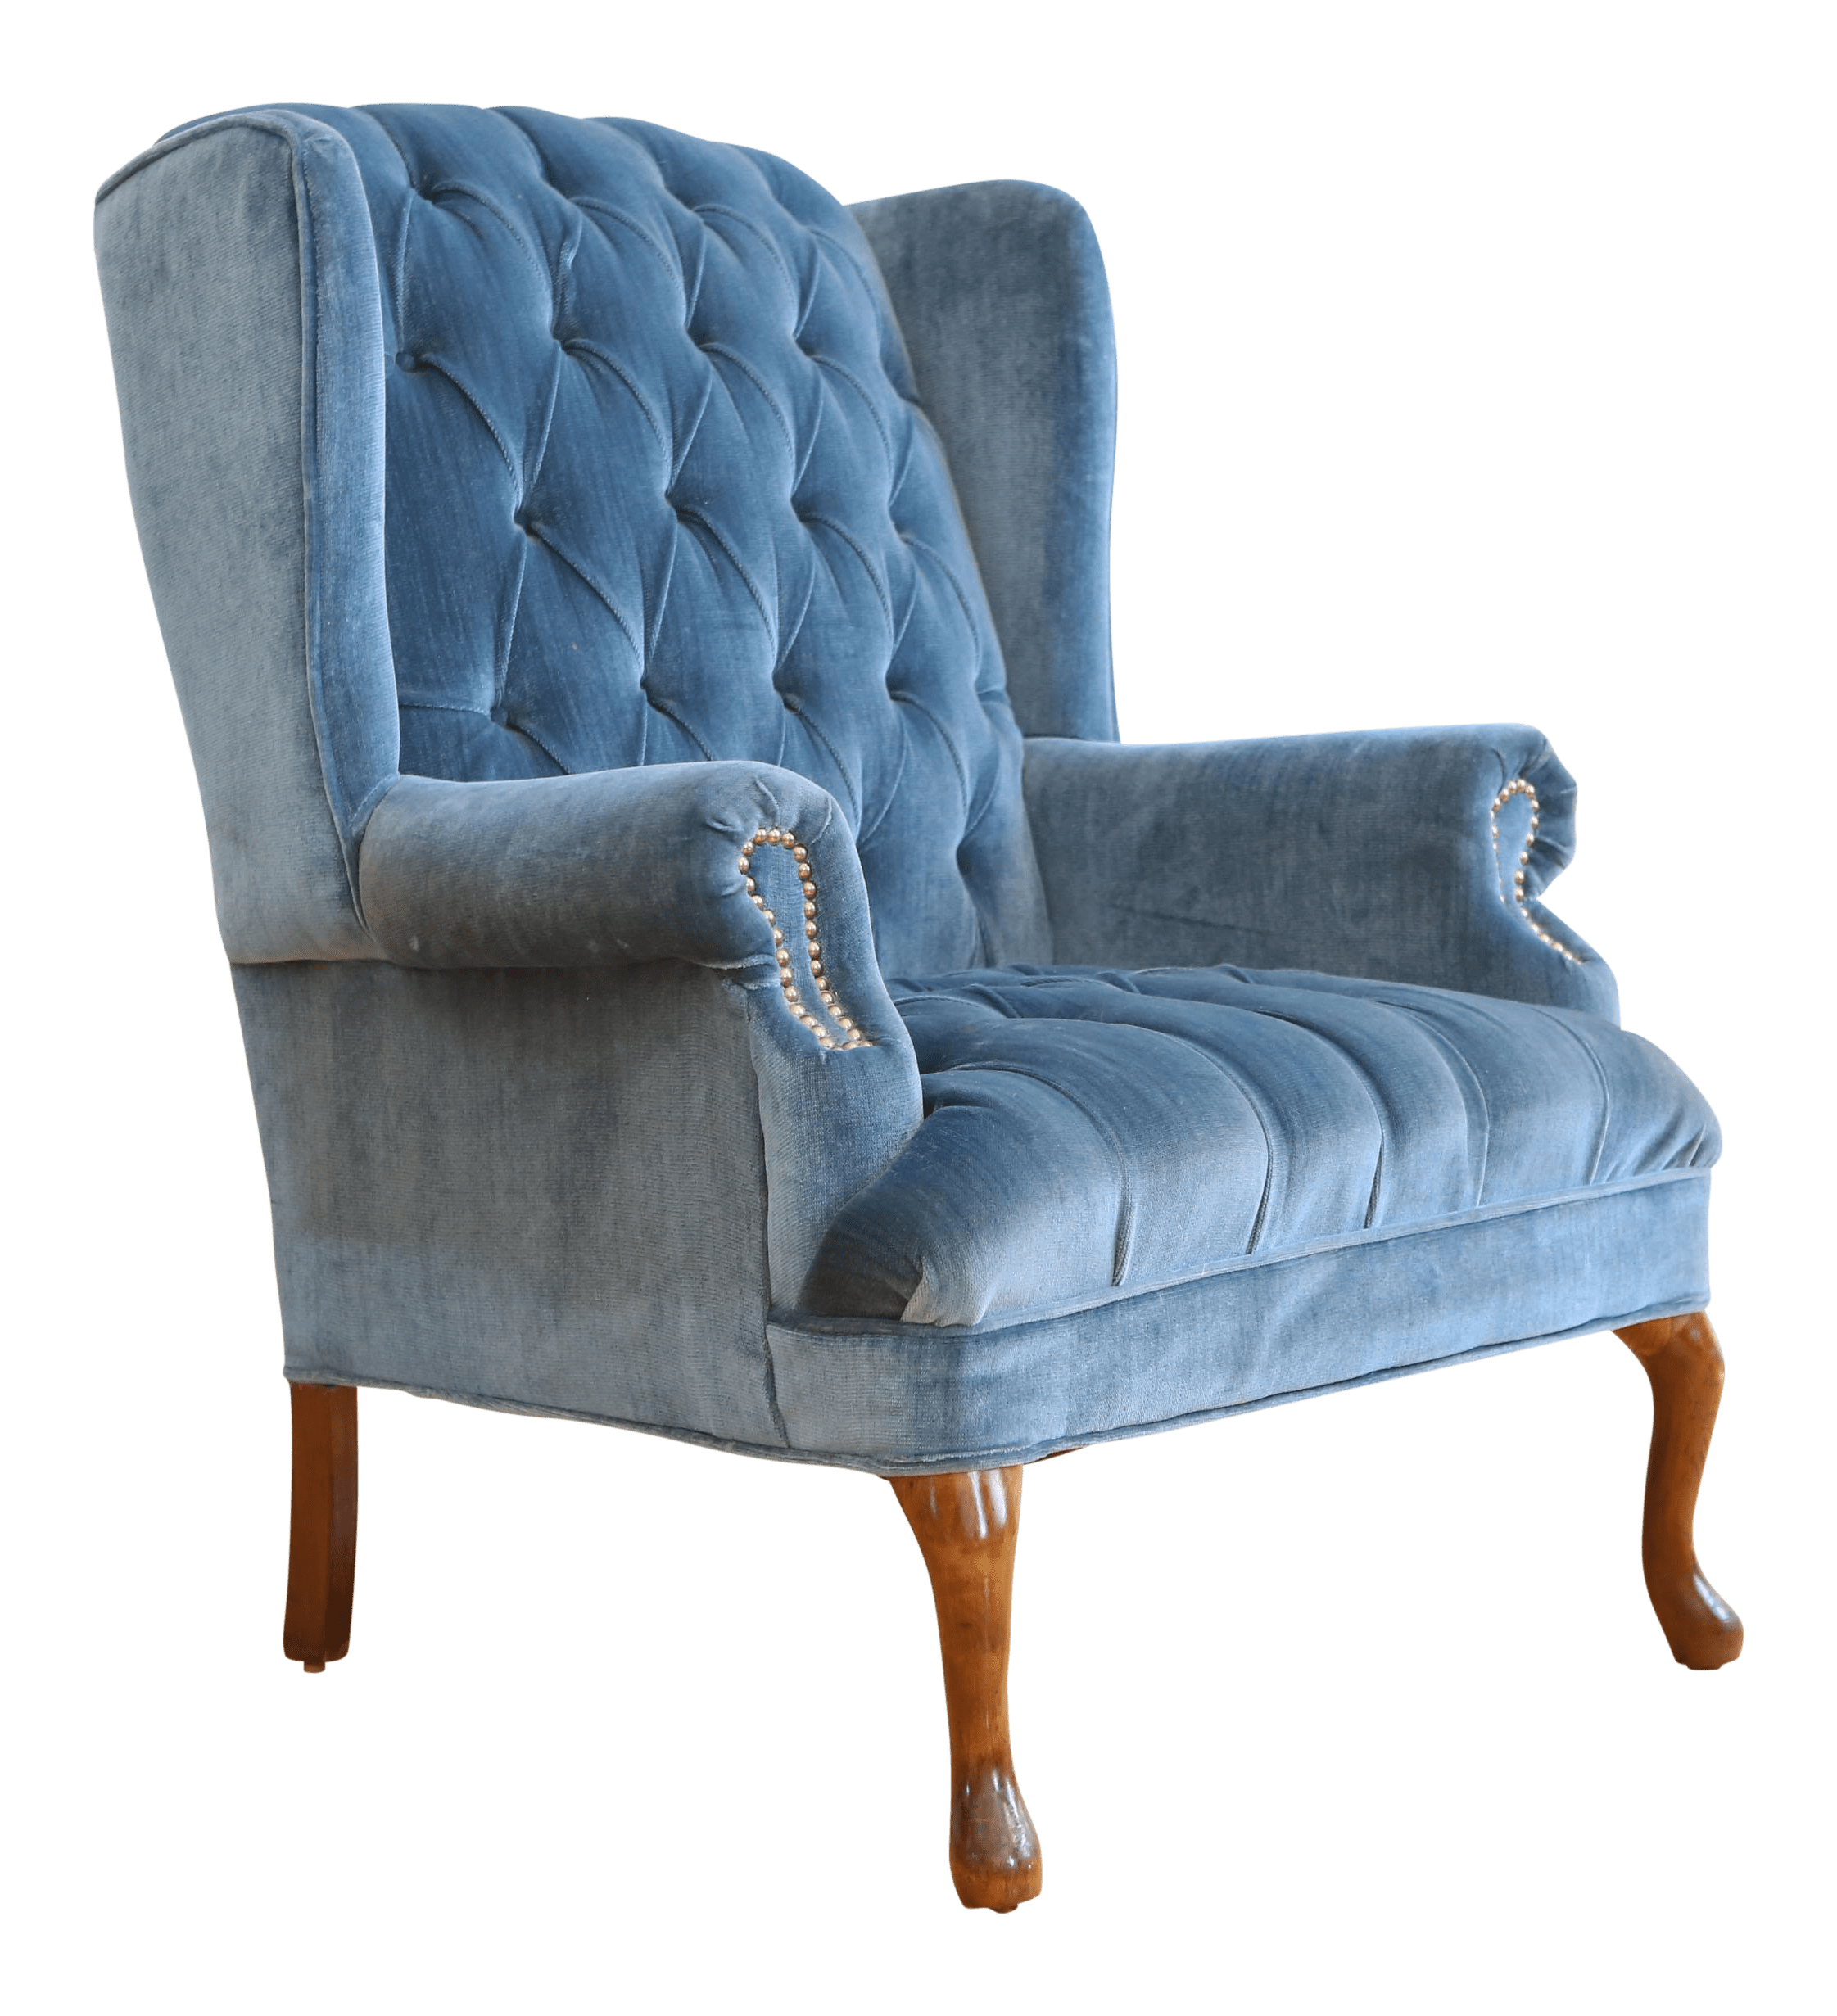 blue wing chair era lounge low steel vintage navy tufted velvet wingback chairish